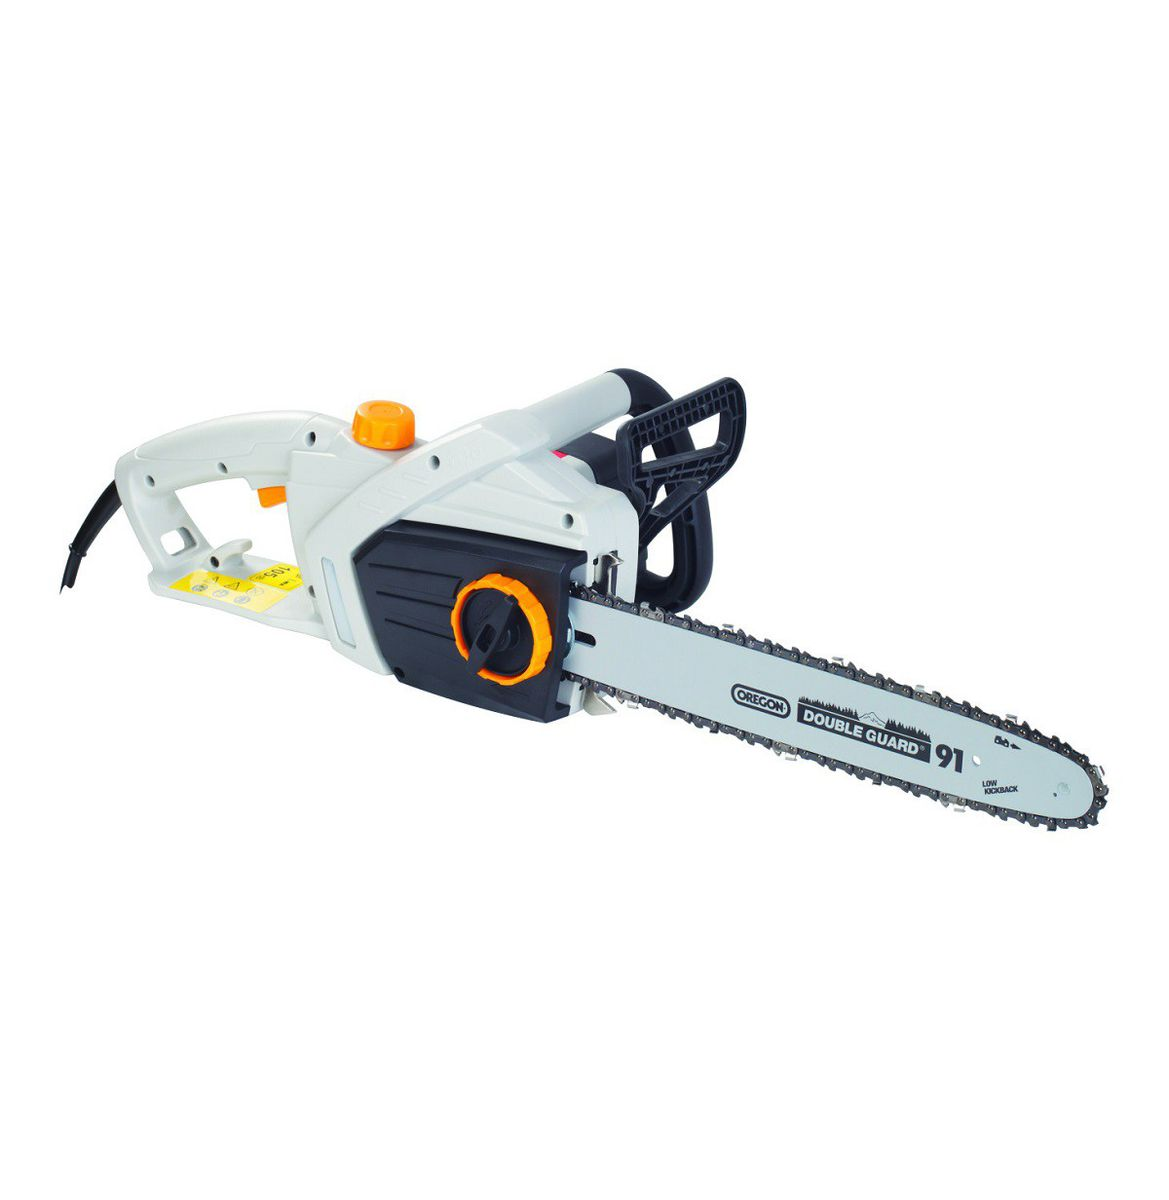 Ryobi 1800w electric chain saw grey buy online in south africa ryobi 1800w electric chain saw grey loading zoom greentooth Images